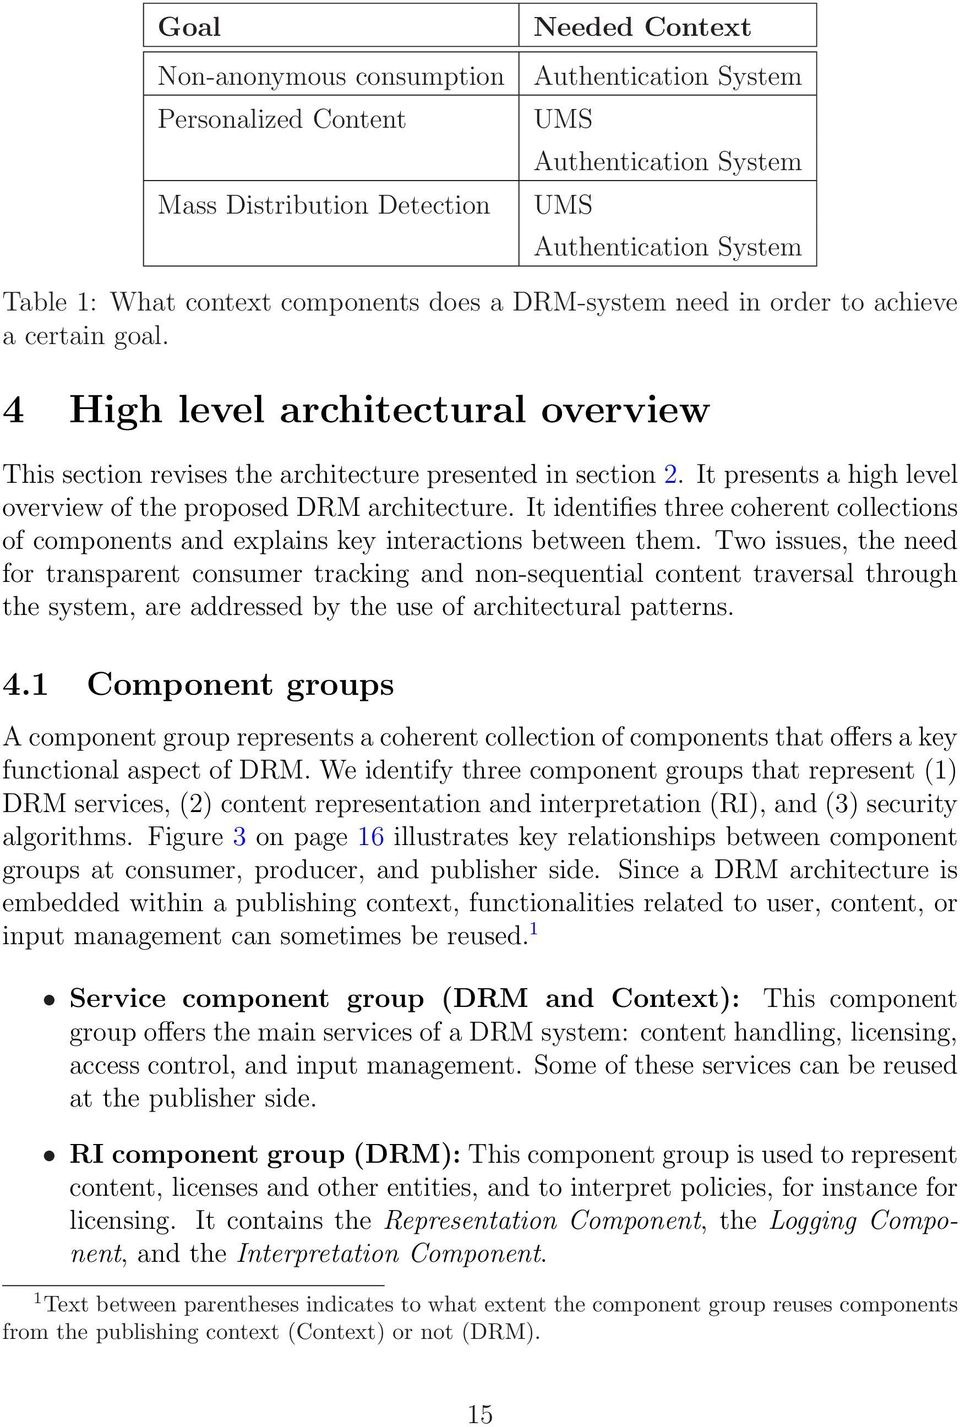 It presents a high level overview of the proposed DRM architecture. It identifies three coherent collections of components and explains key interactions between them.